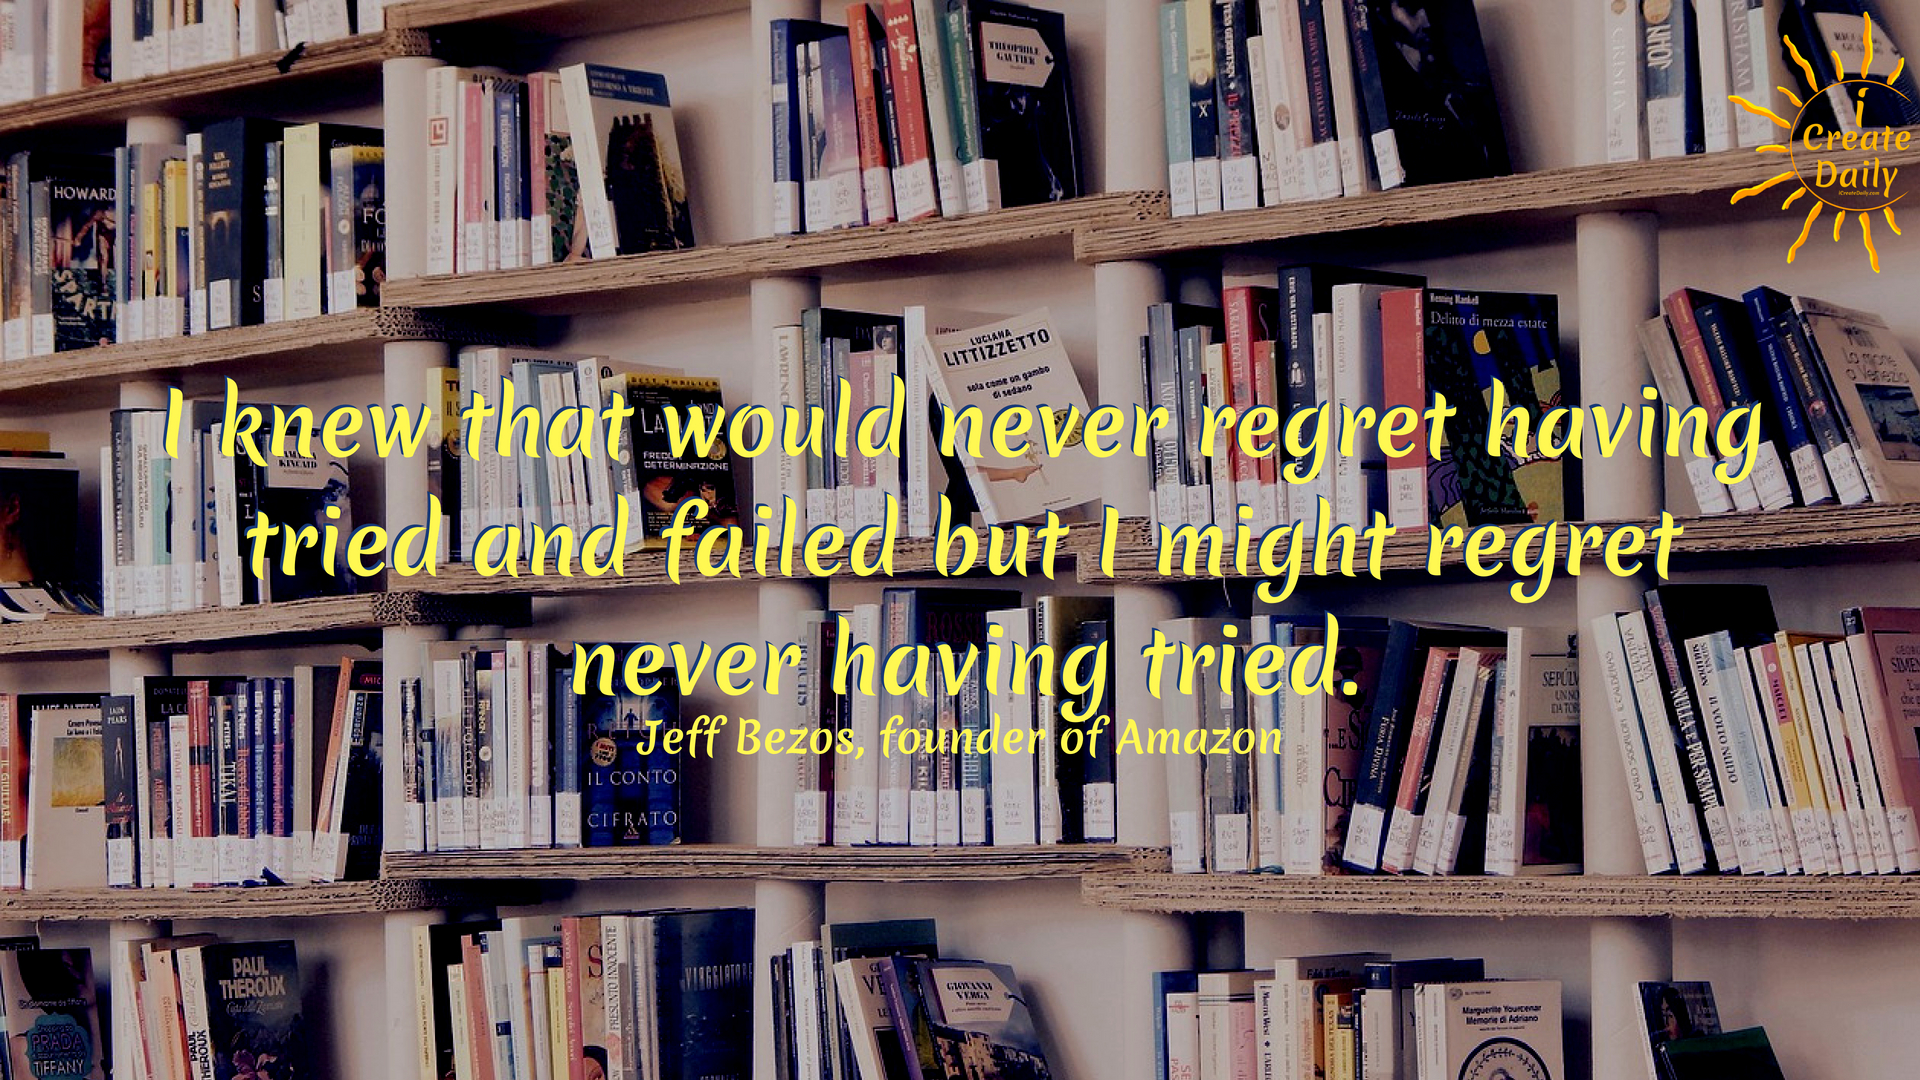 I knew that would never regret having tried and failed but I might regret never having tried. ~Jeff Bezos, founder of Amazon #quotes #business #life #goals